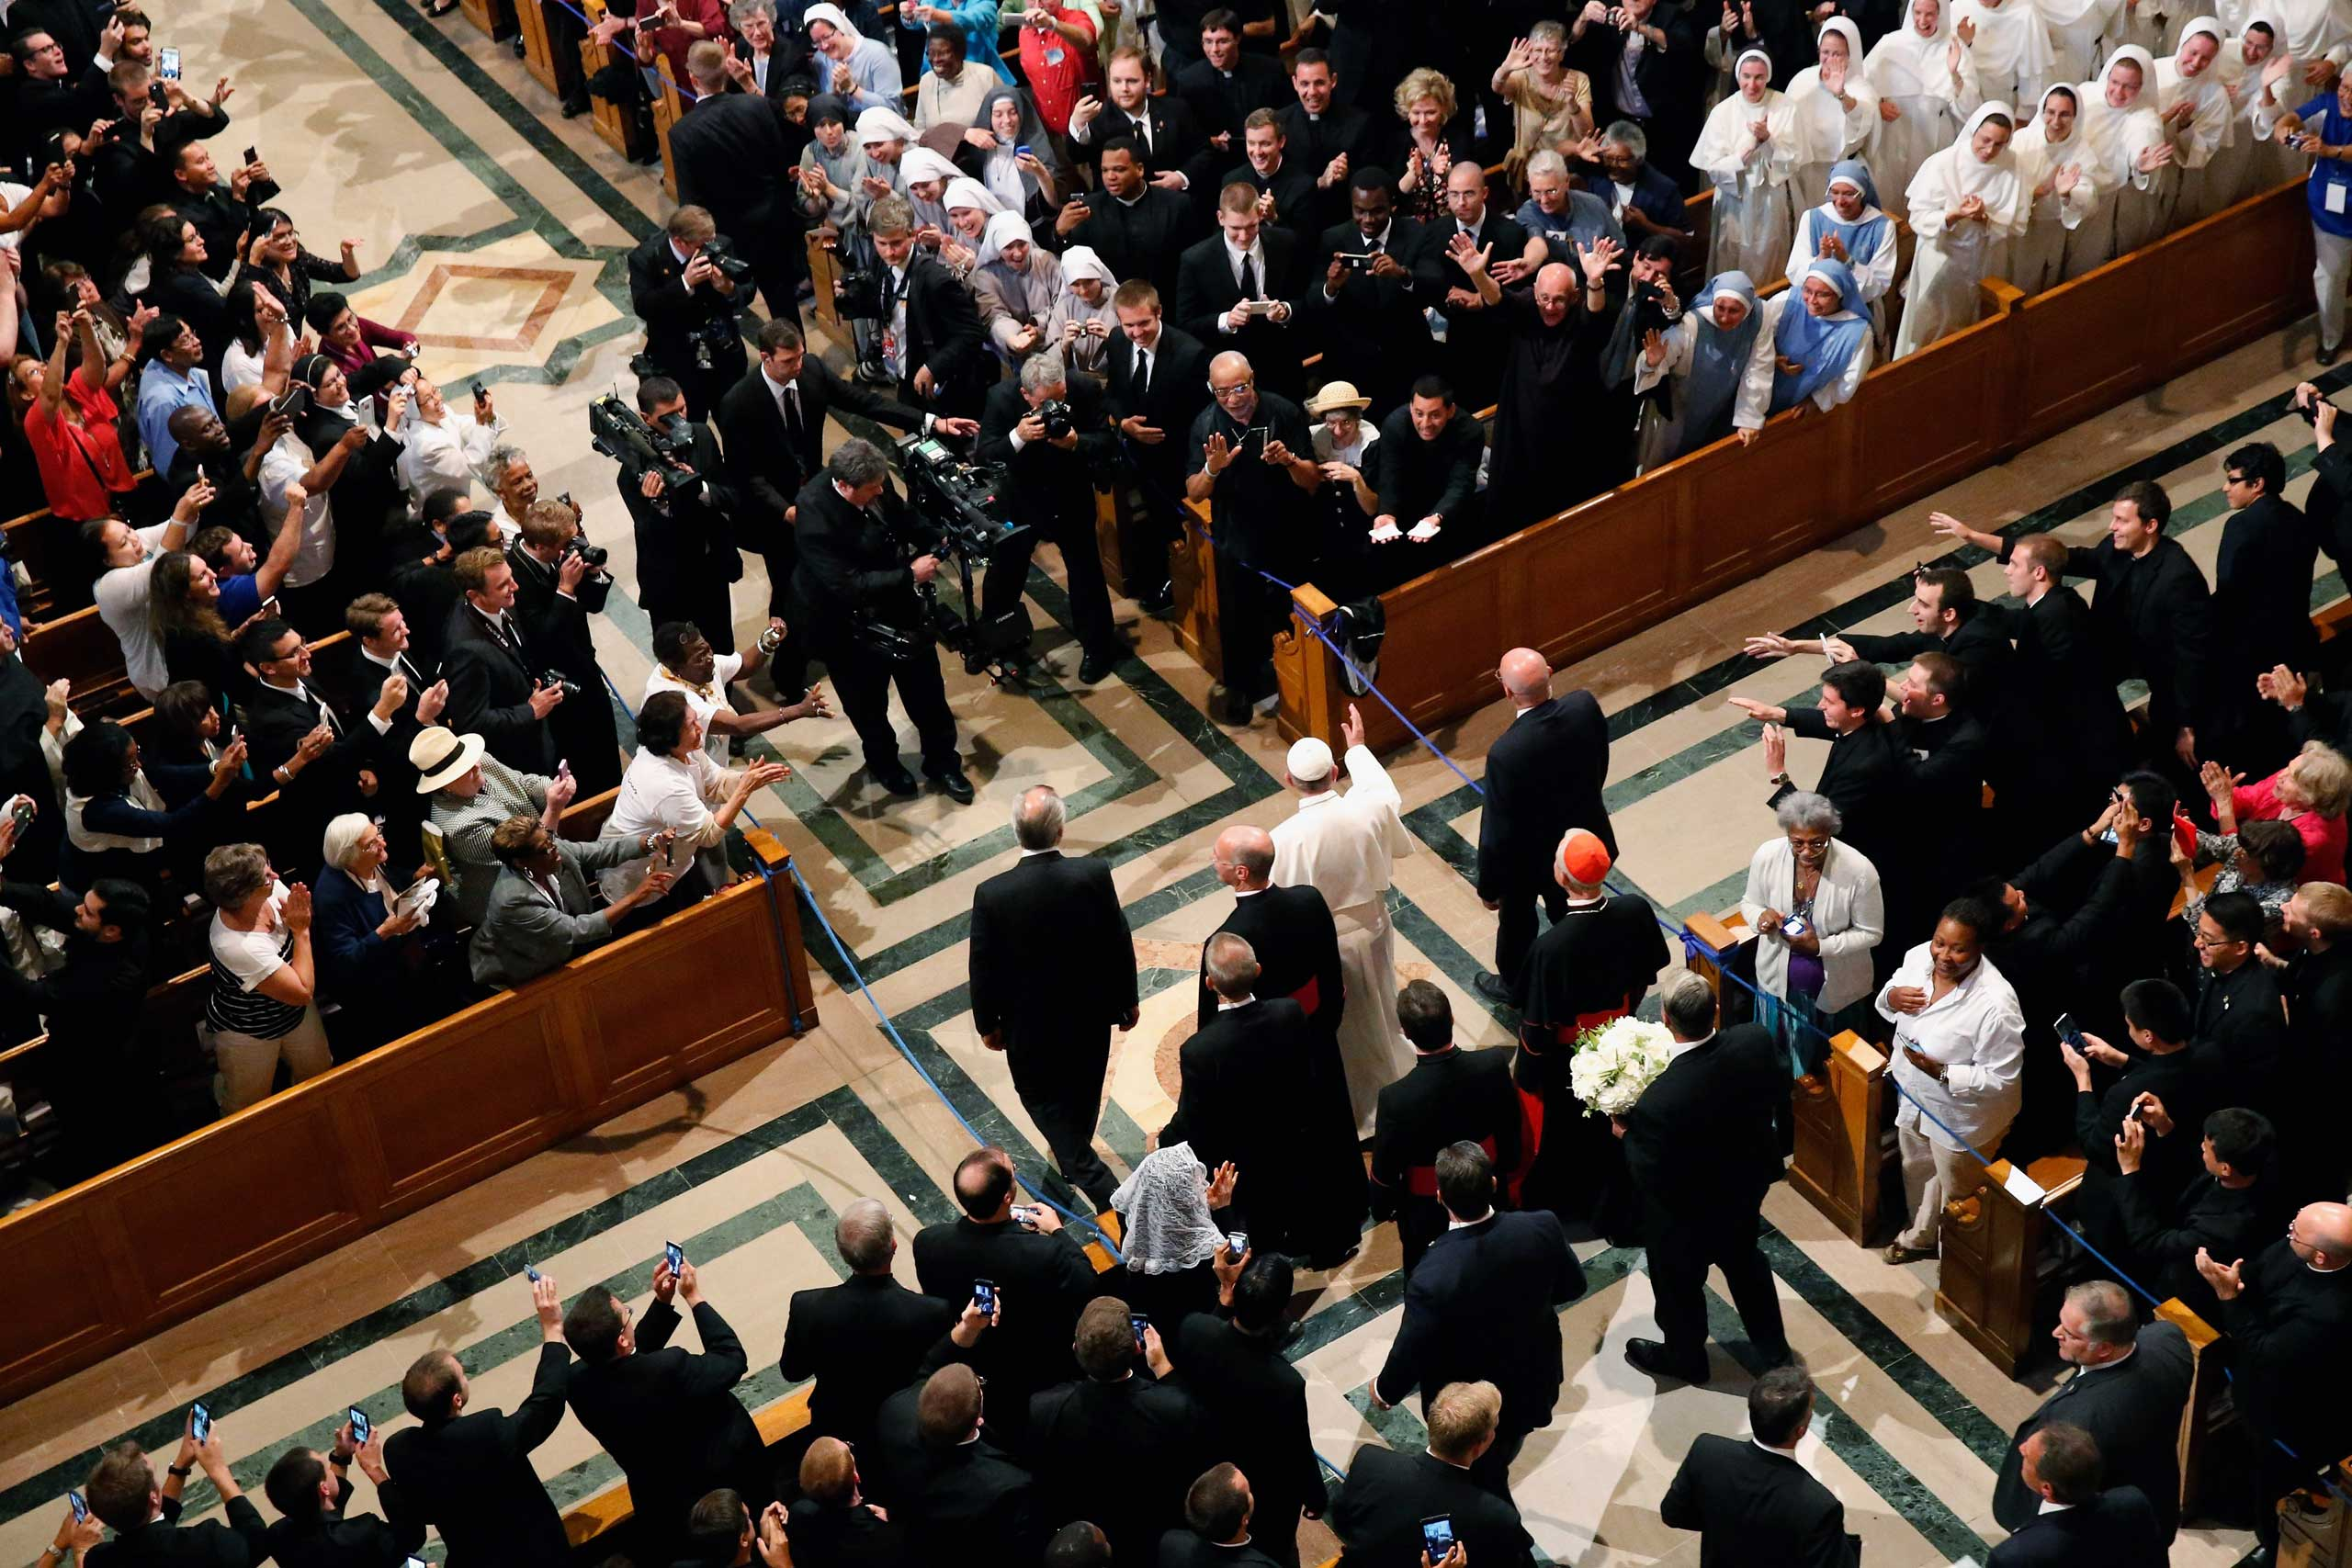 Pope Francis arrives for the canonization Mass for Junipero Serra at the Basilica of the National Shrine of the Immaculate Conception in Washington, on Sept. 23, 2015.